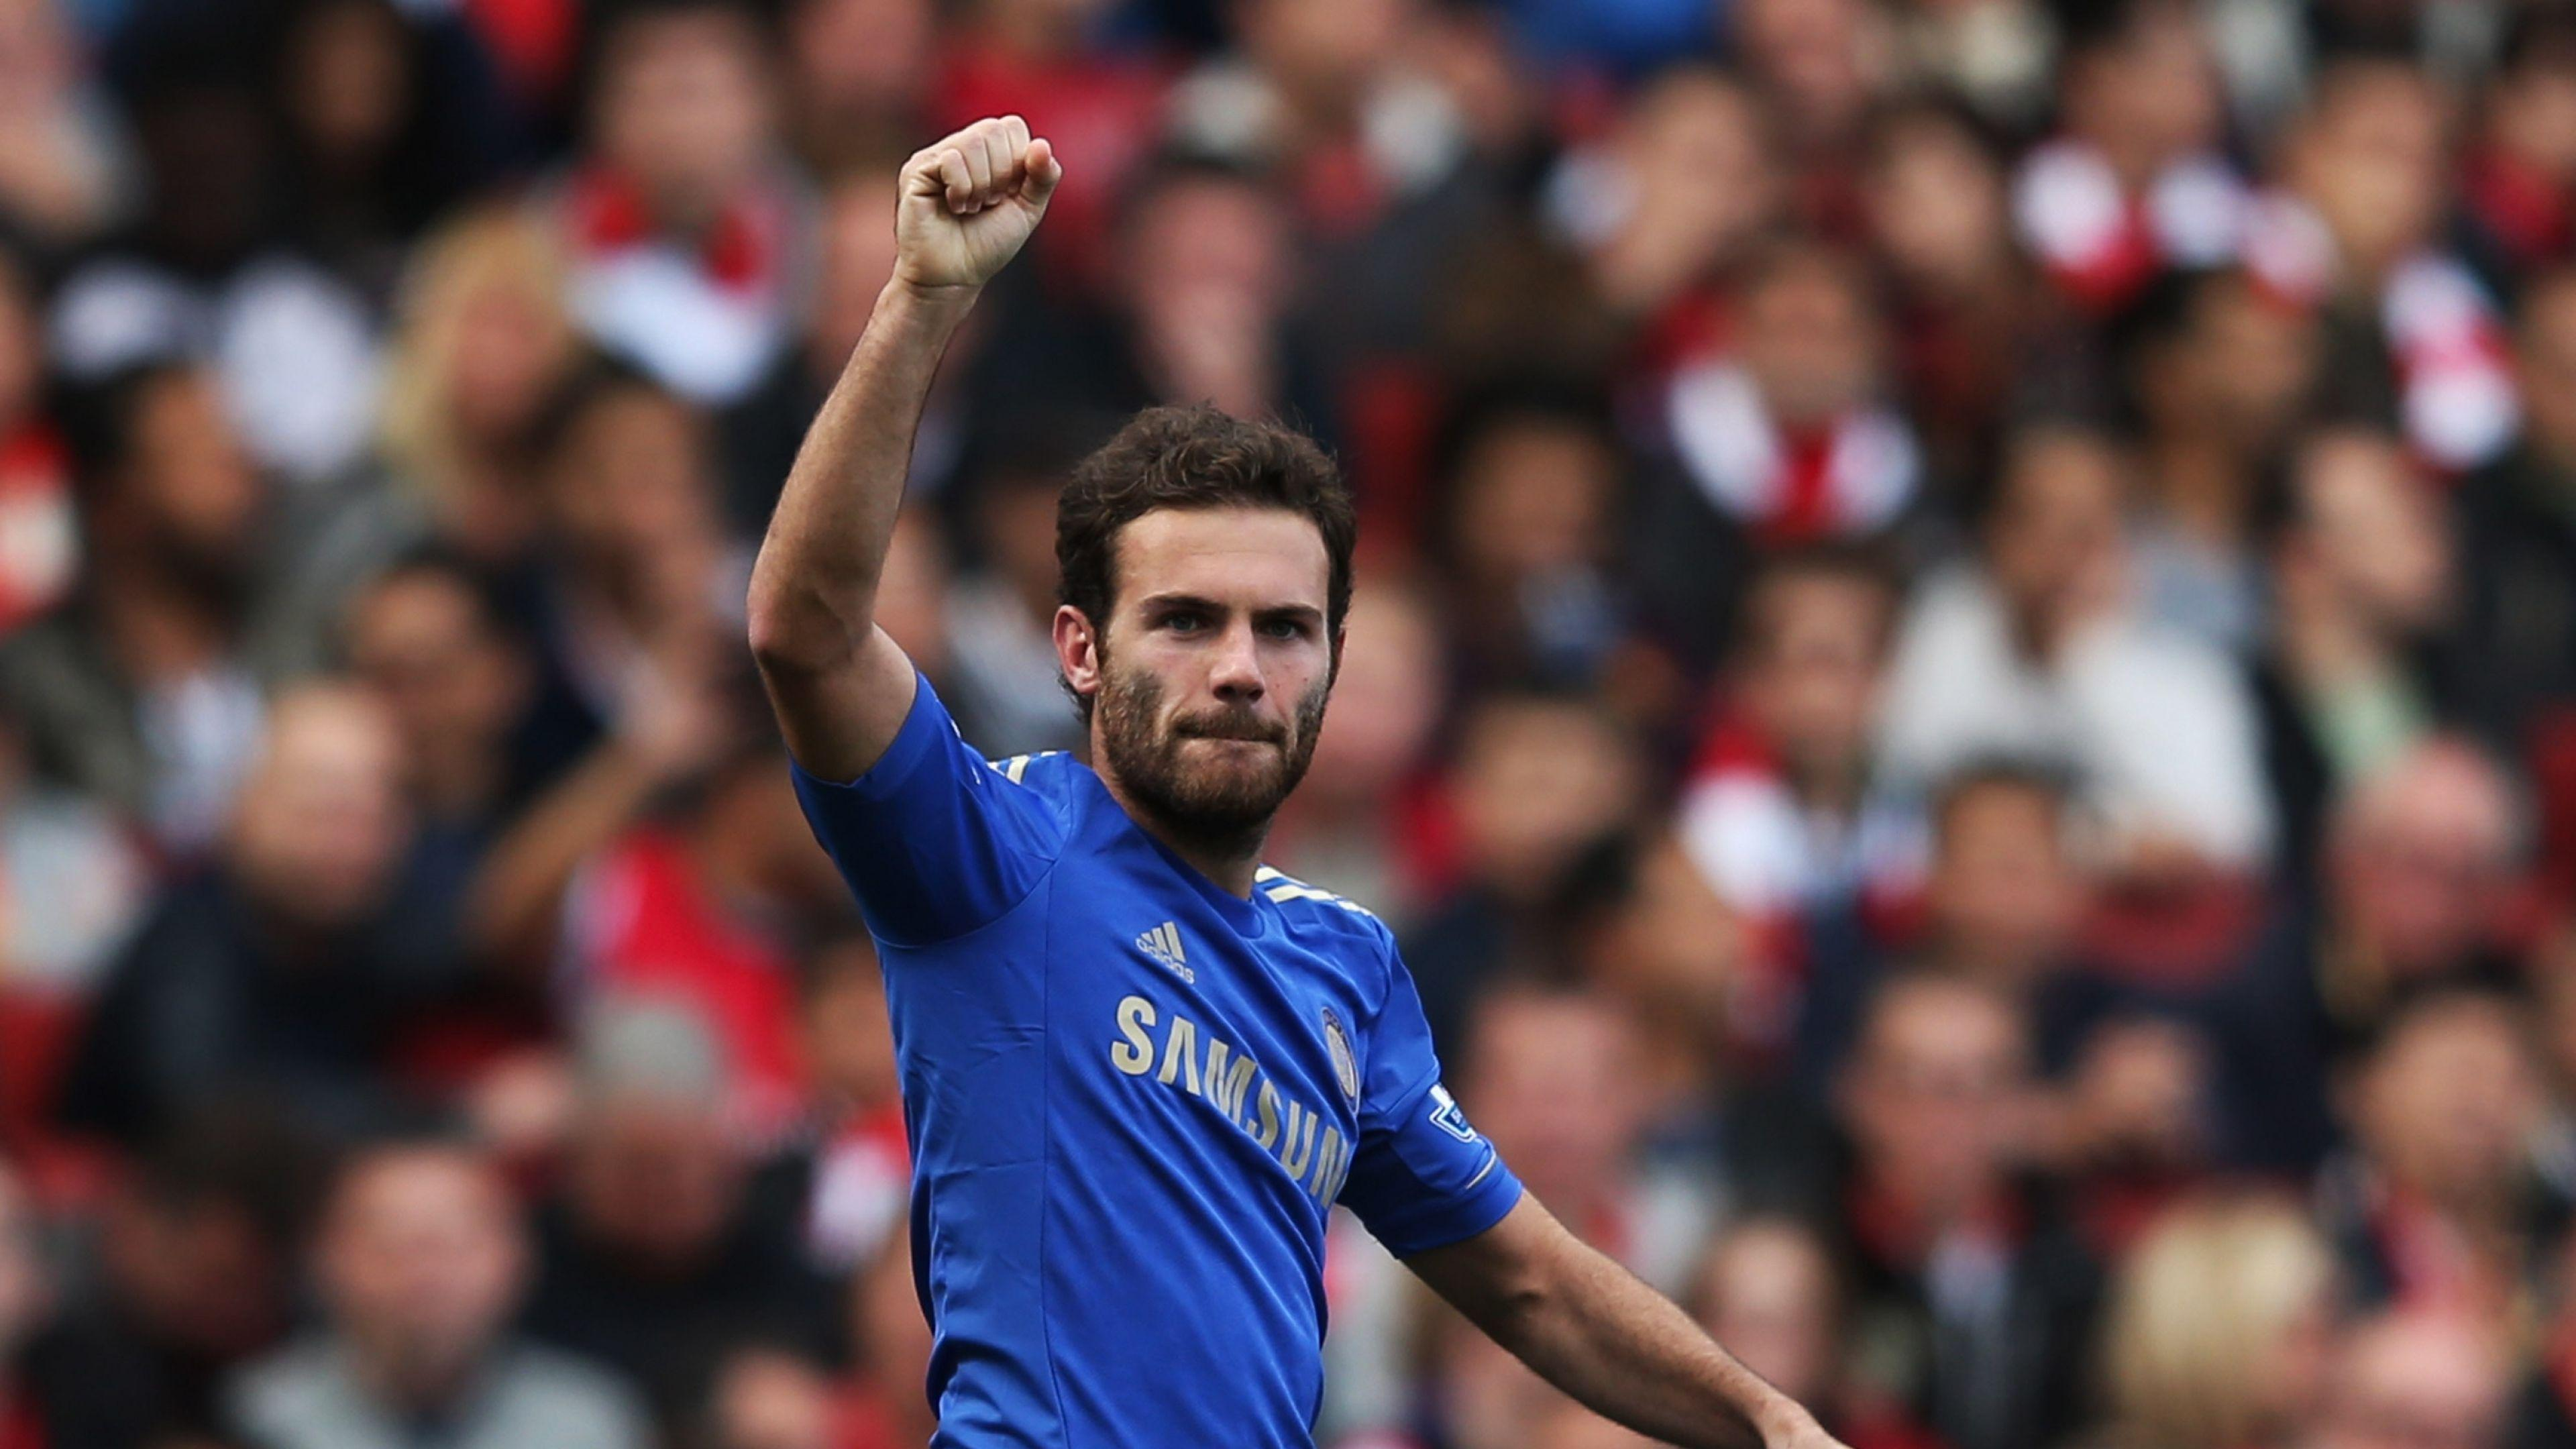 Download Wallpaper 3840x2160 Juan mata, Spain, Midfielder, Chelsea ...